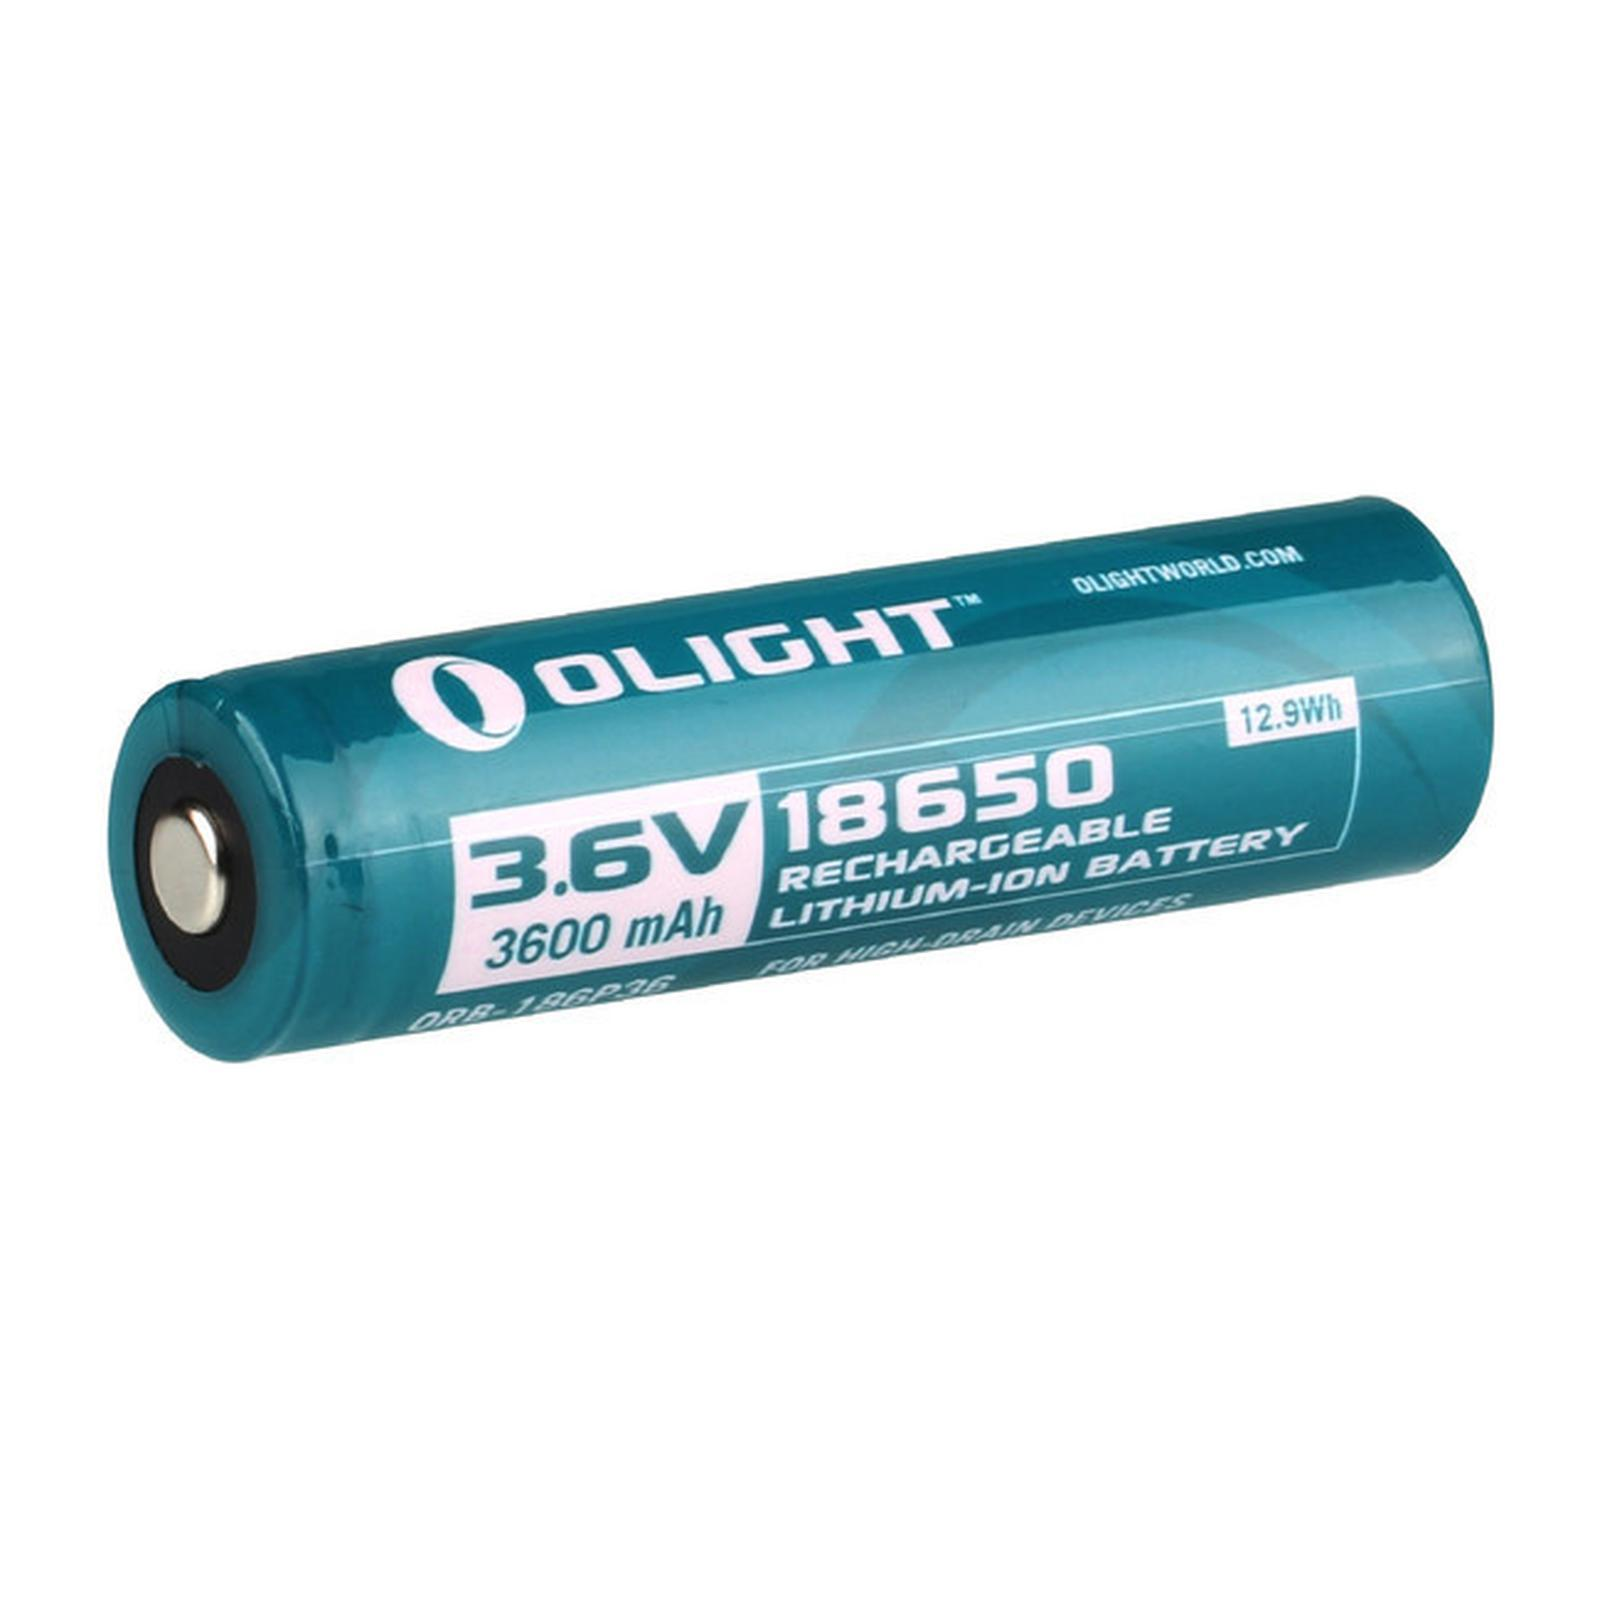 АККУМУЛЯТОР LI-ION OLIGHT ORB-186P36 18650 3,7 В. 3600 MAH аккумулятор samsung для samsung galaxy s3 mini 1500 mah li ion